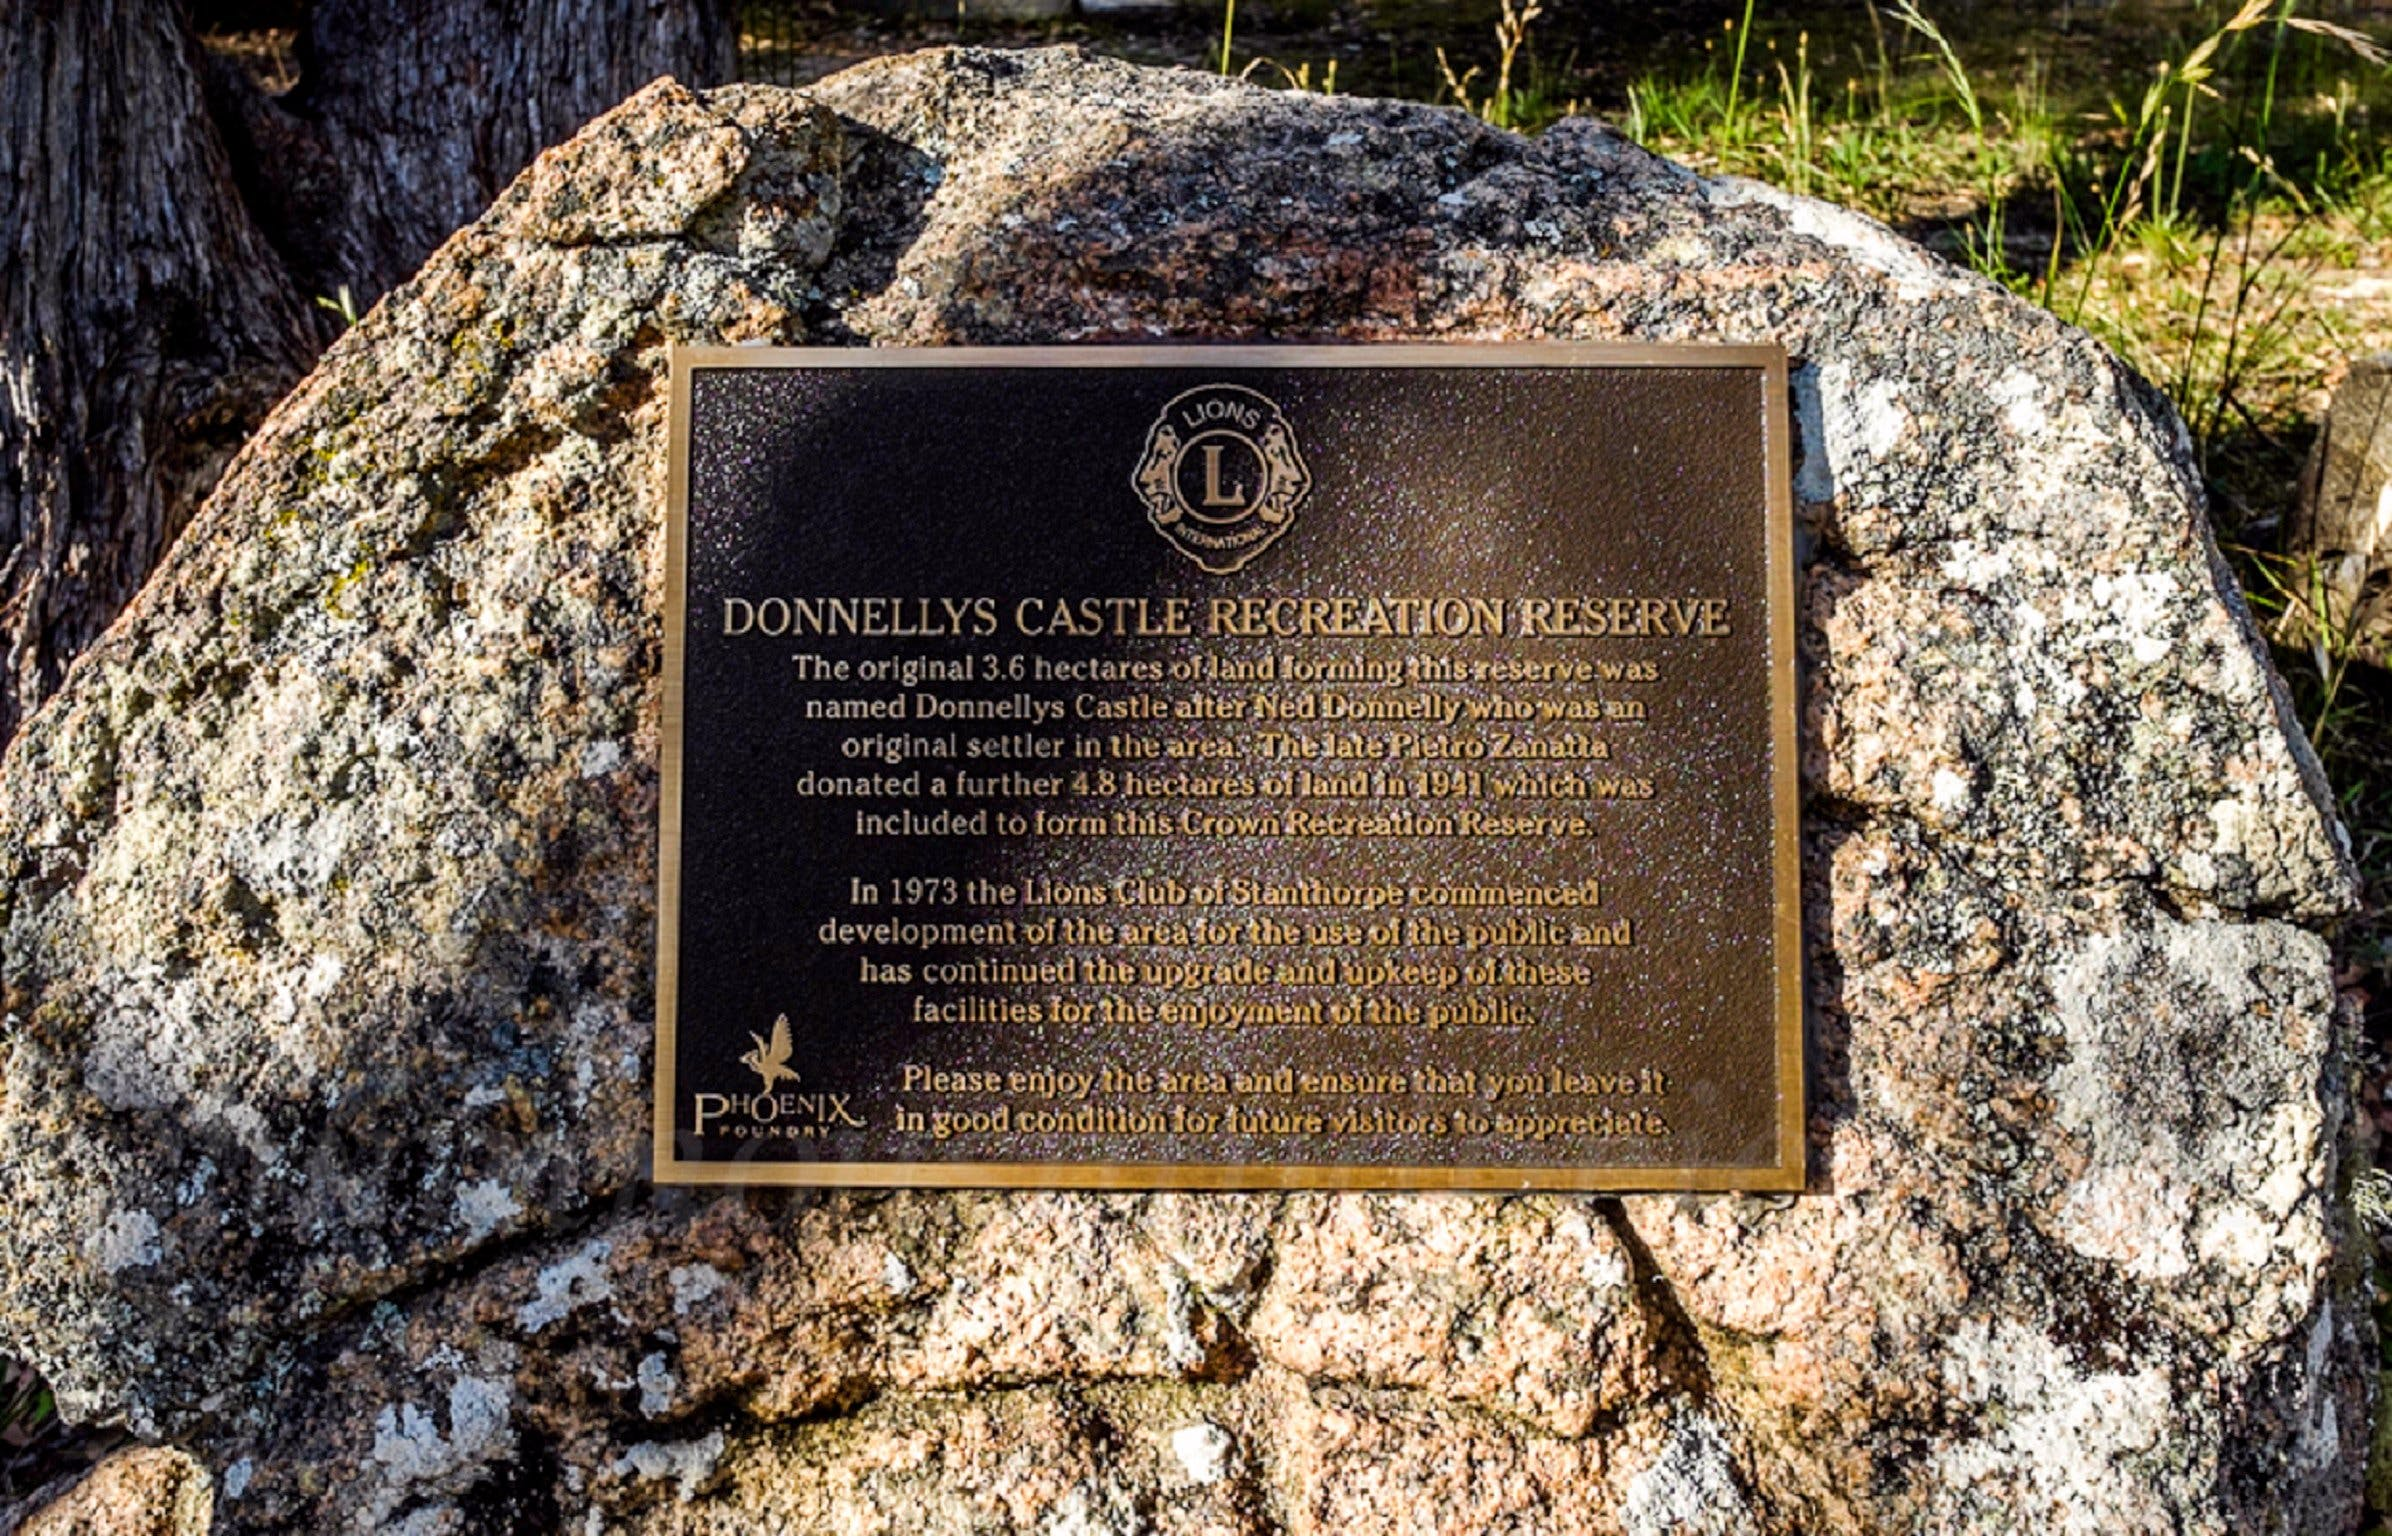 Donnellys Castle Logo and Images